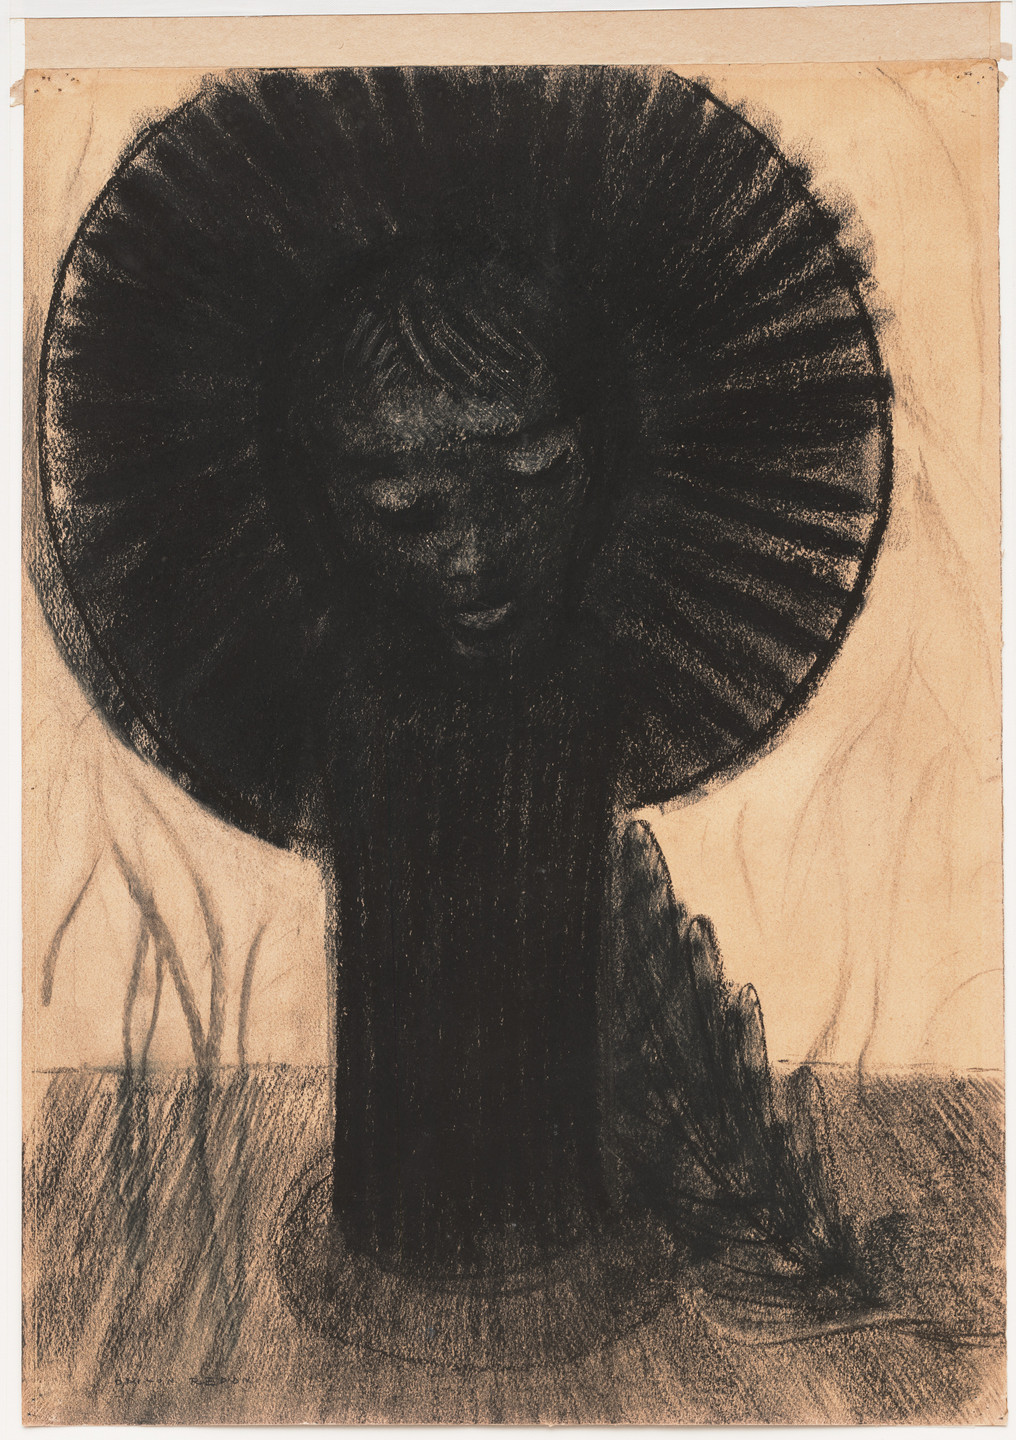 Odilon Redon. Germination. (c. 1890-96)